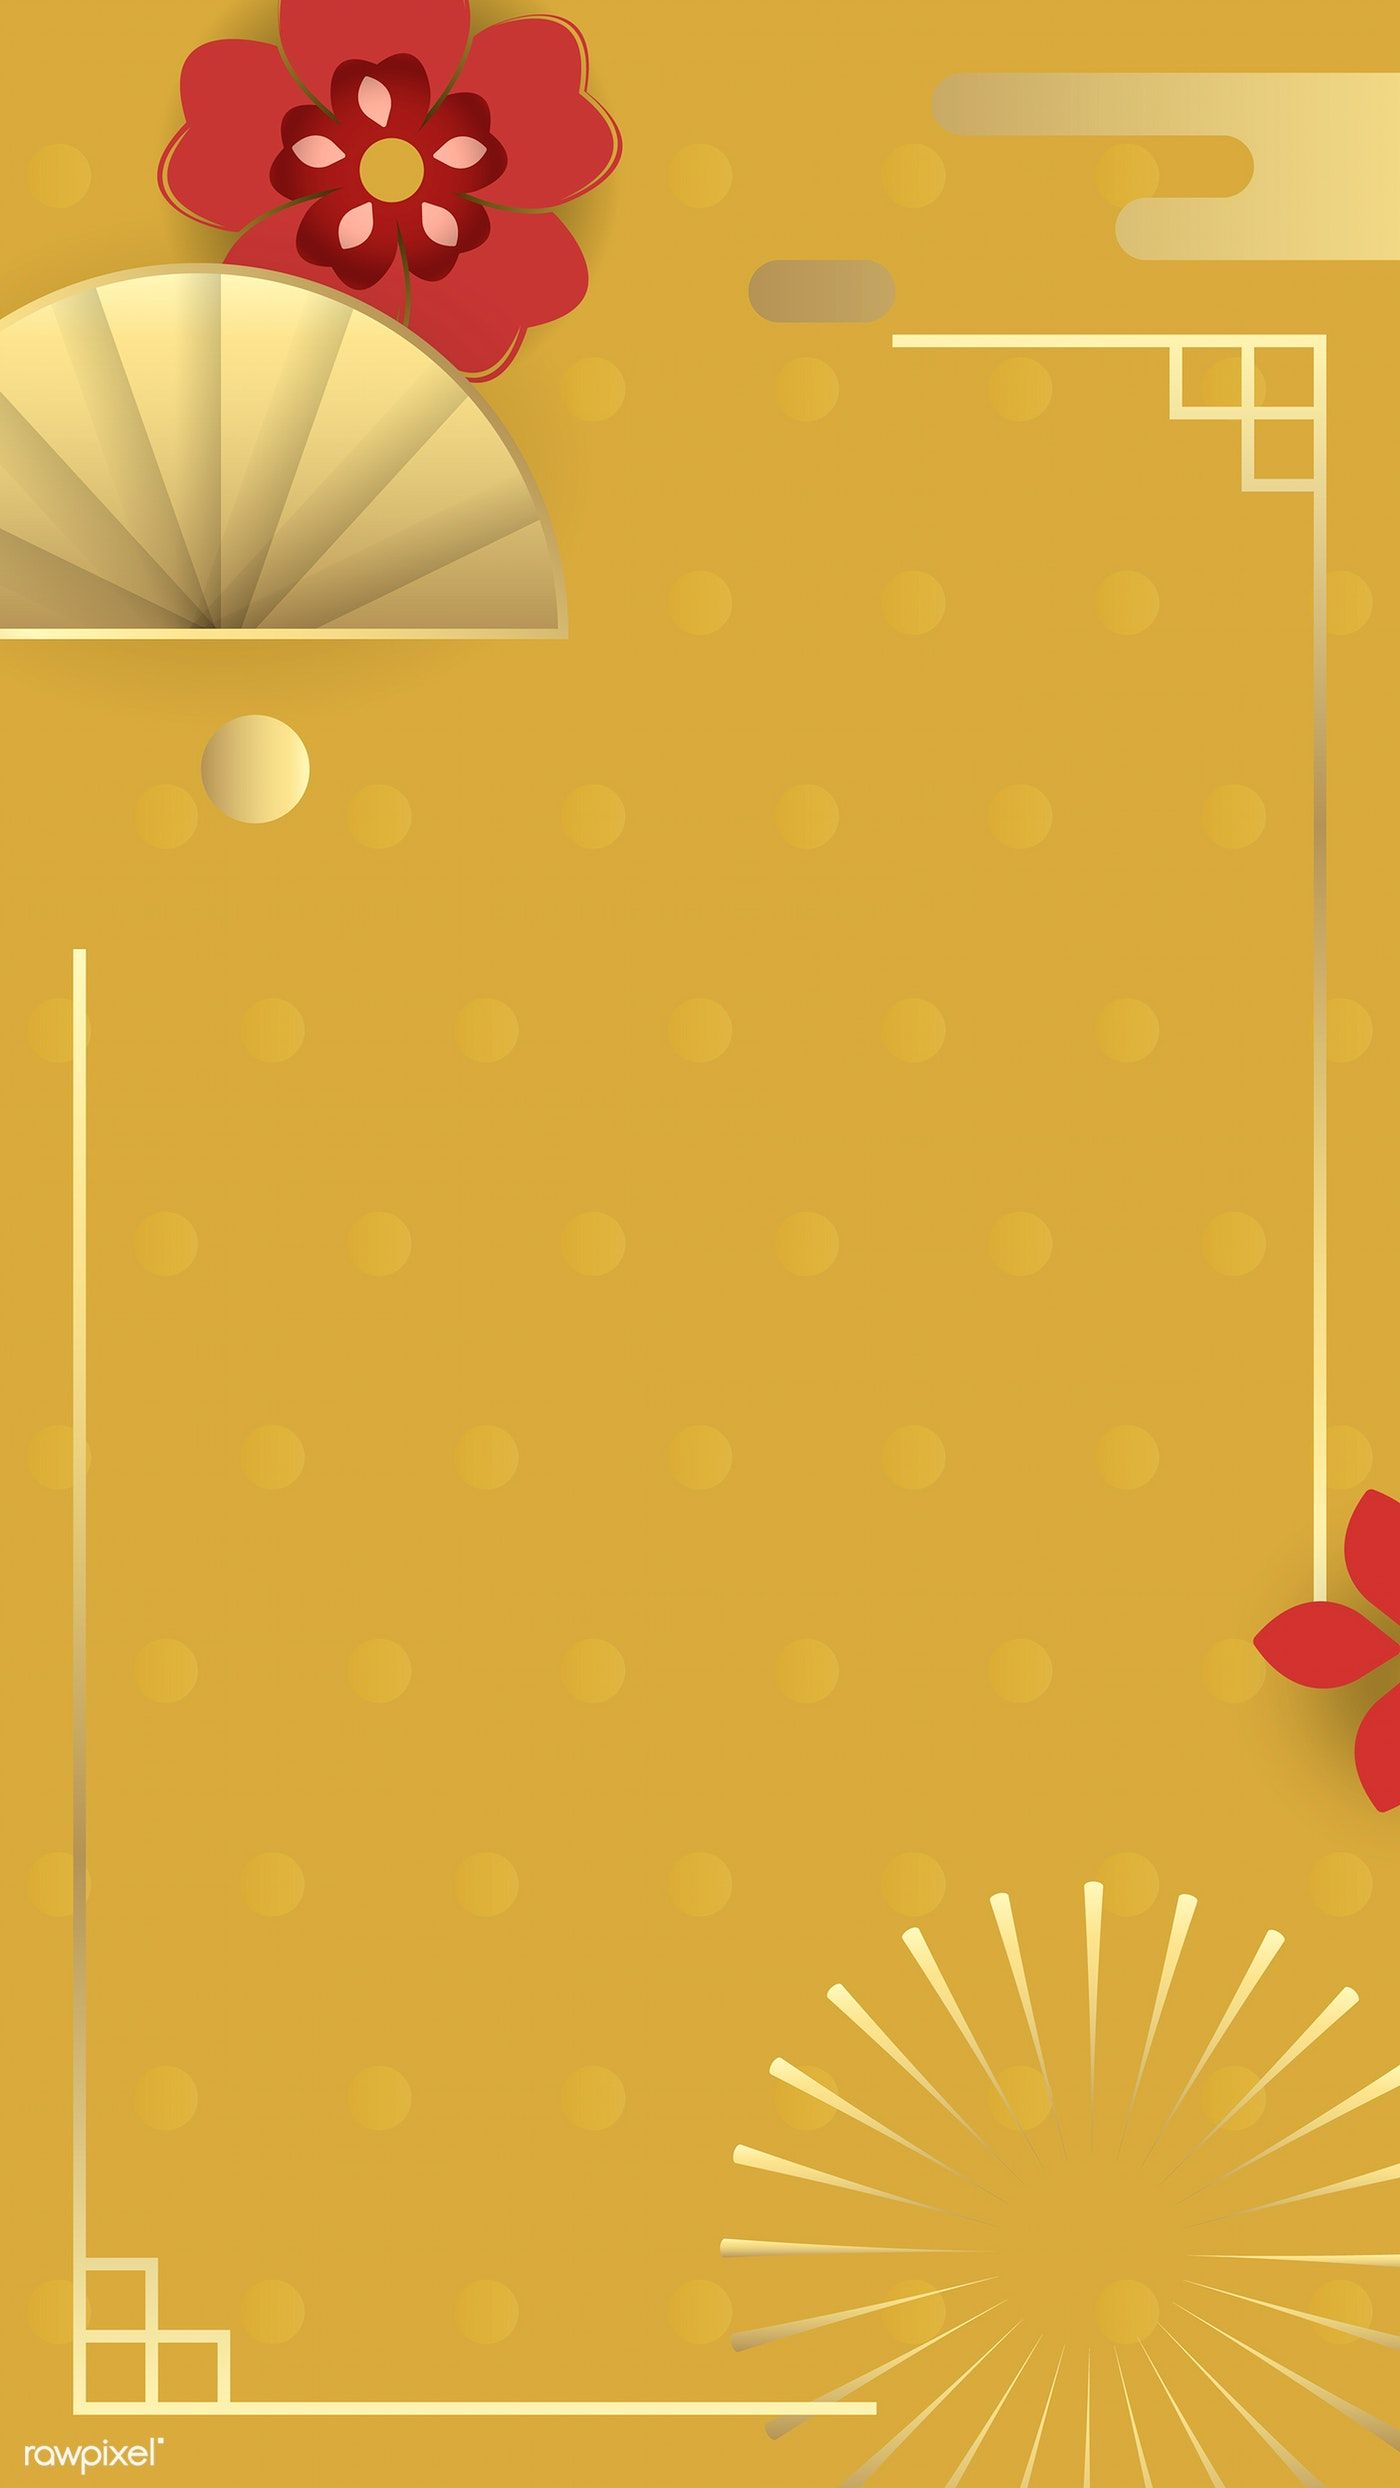 Download Premium Vector Of Happy Chinese New Year 2020 Phone Background In 2020 Happy Chinese New Year Chinese New Year 2020 Chinese New Year